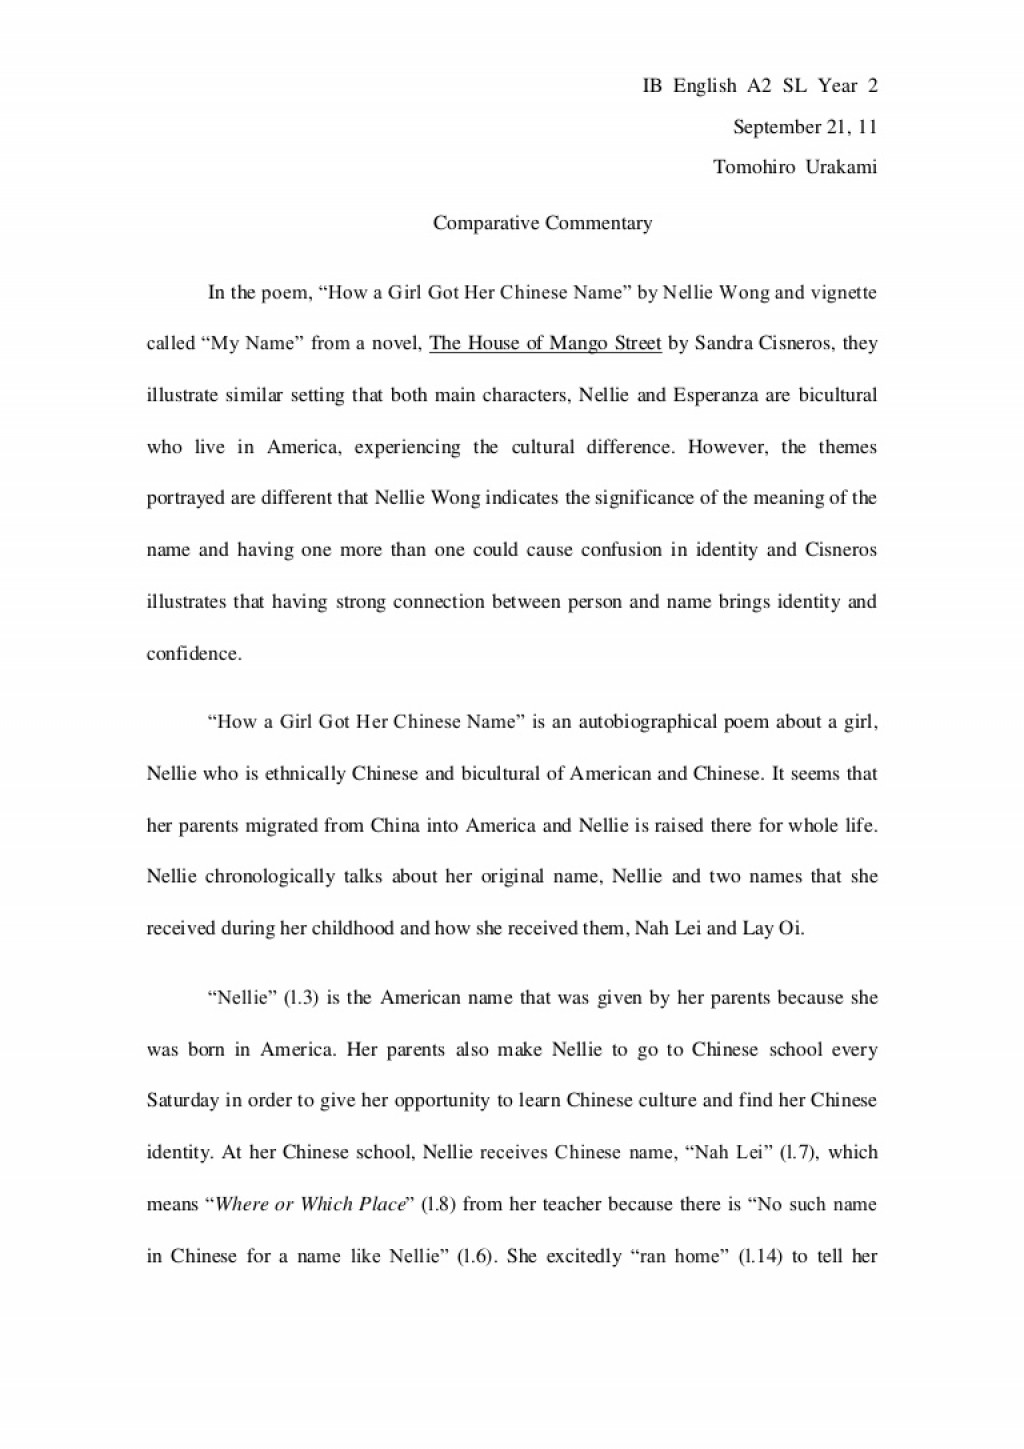 005 Essay Example Comparativeessaydraft Phpapp02 Thumbnail Stupendous Comparison Pdf Introduction Compare Contrast Sample College Large